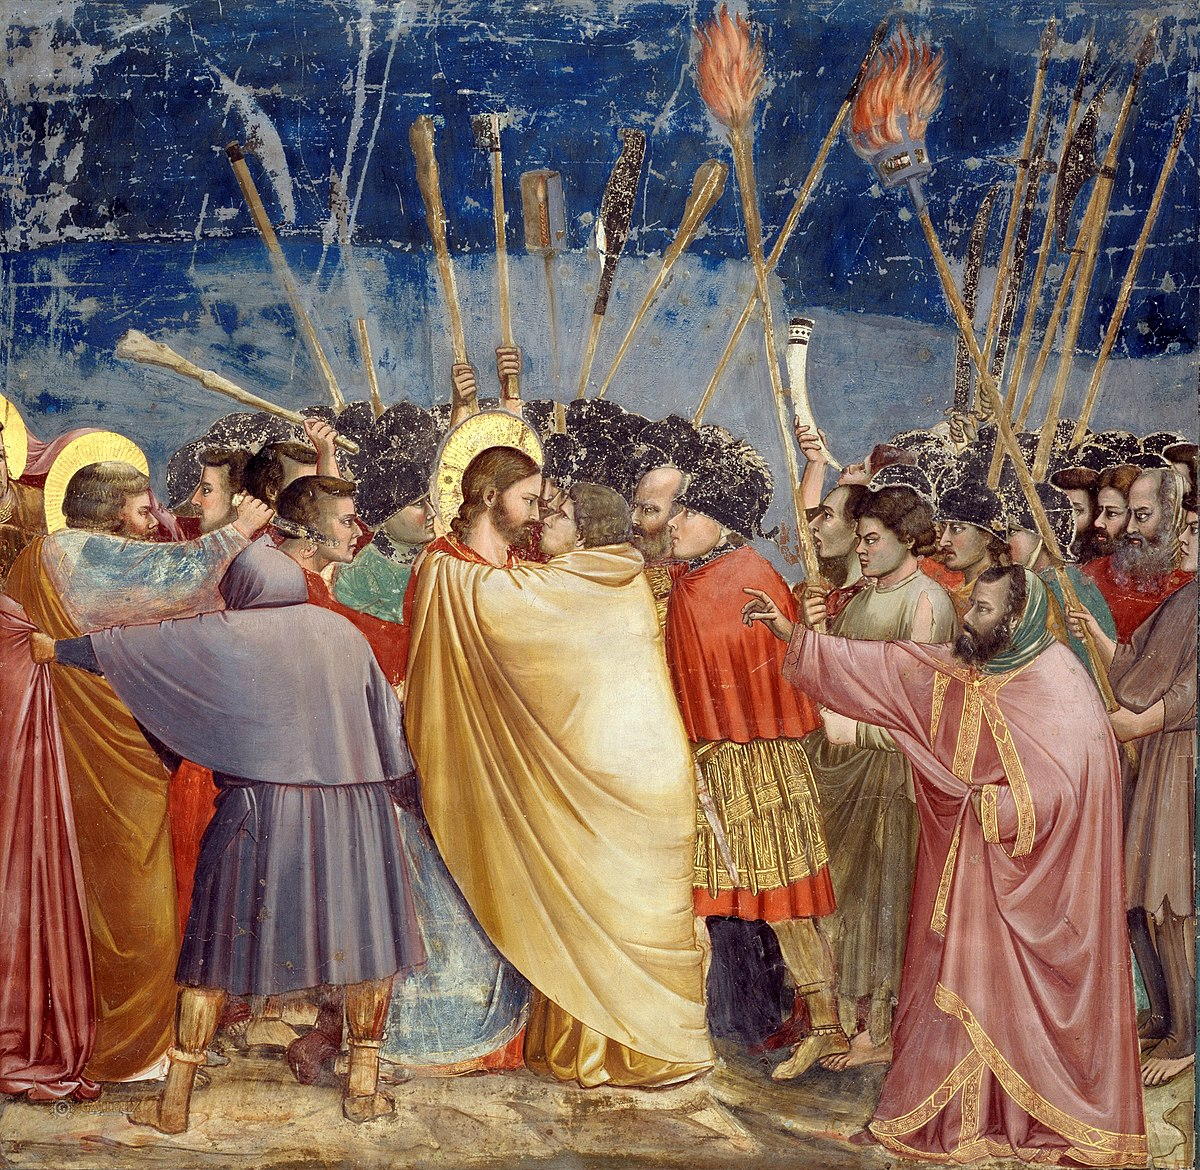 1200px-Giotto_-_Scrovegni_-_-31-_-_Kiss_of_Judas